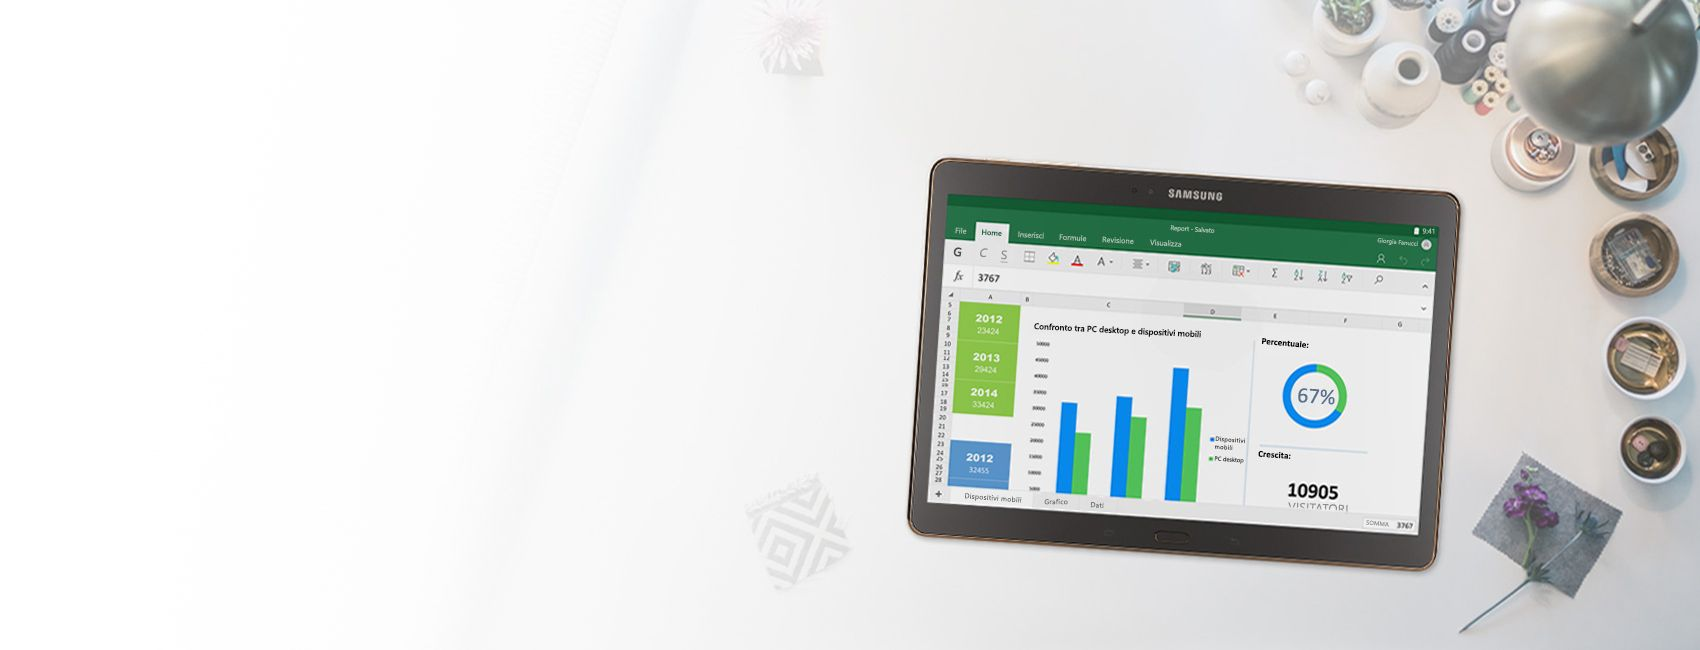 Tablet che visualizza grafici in un report di Excel